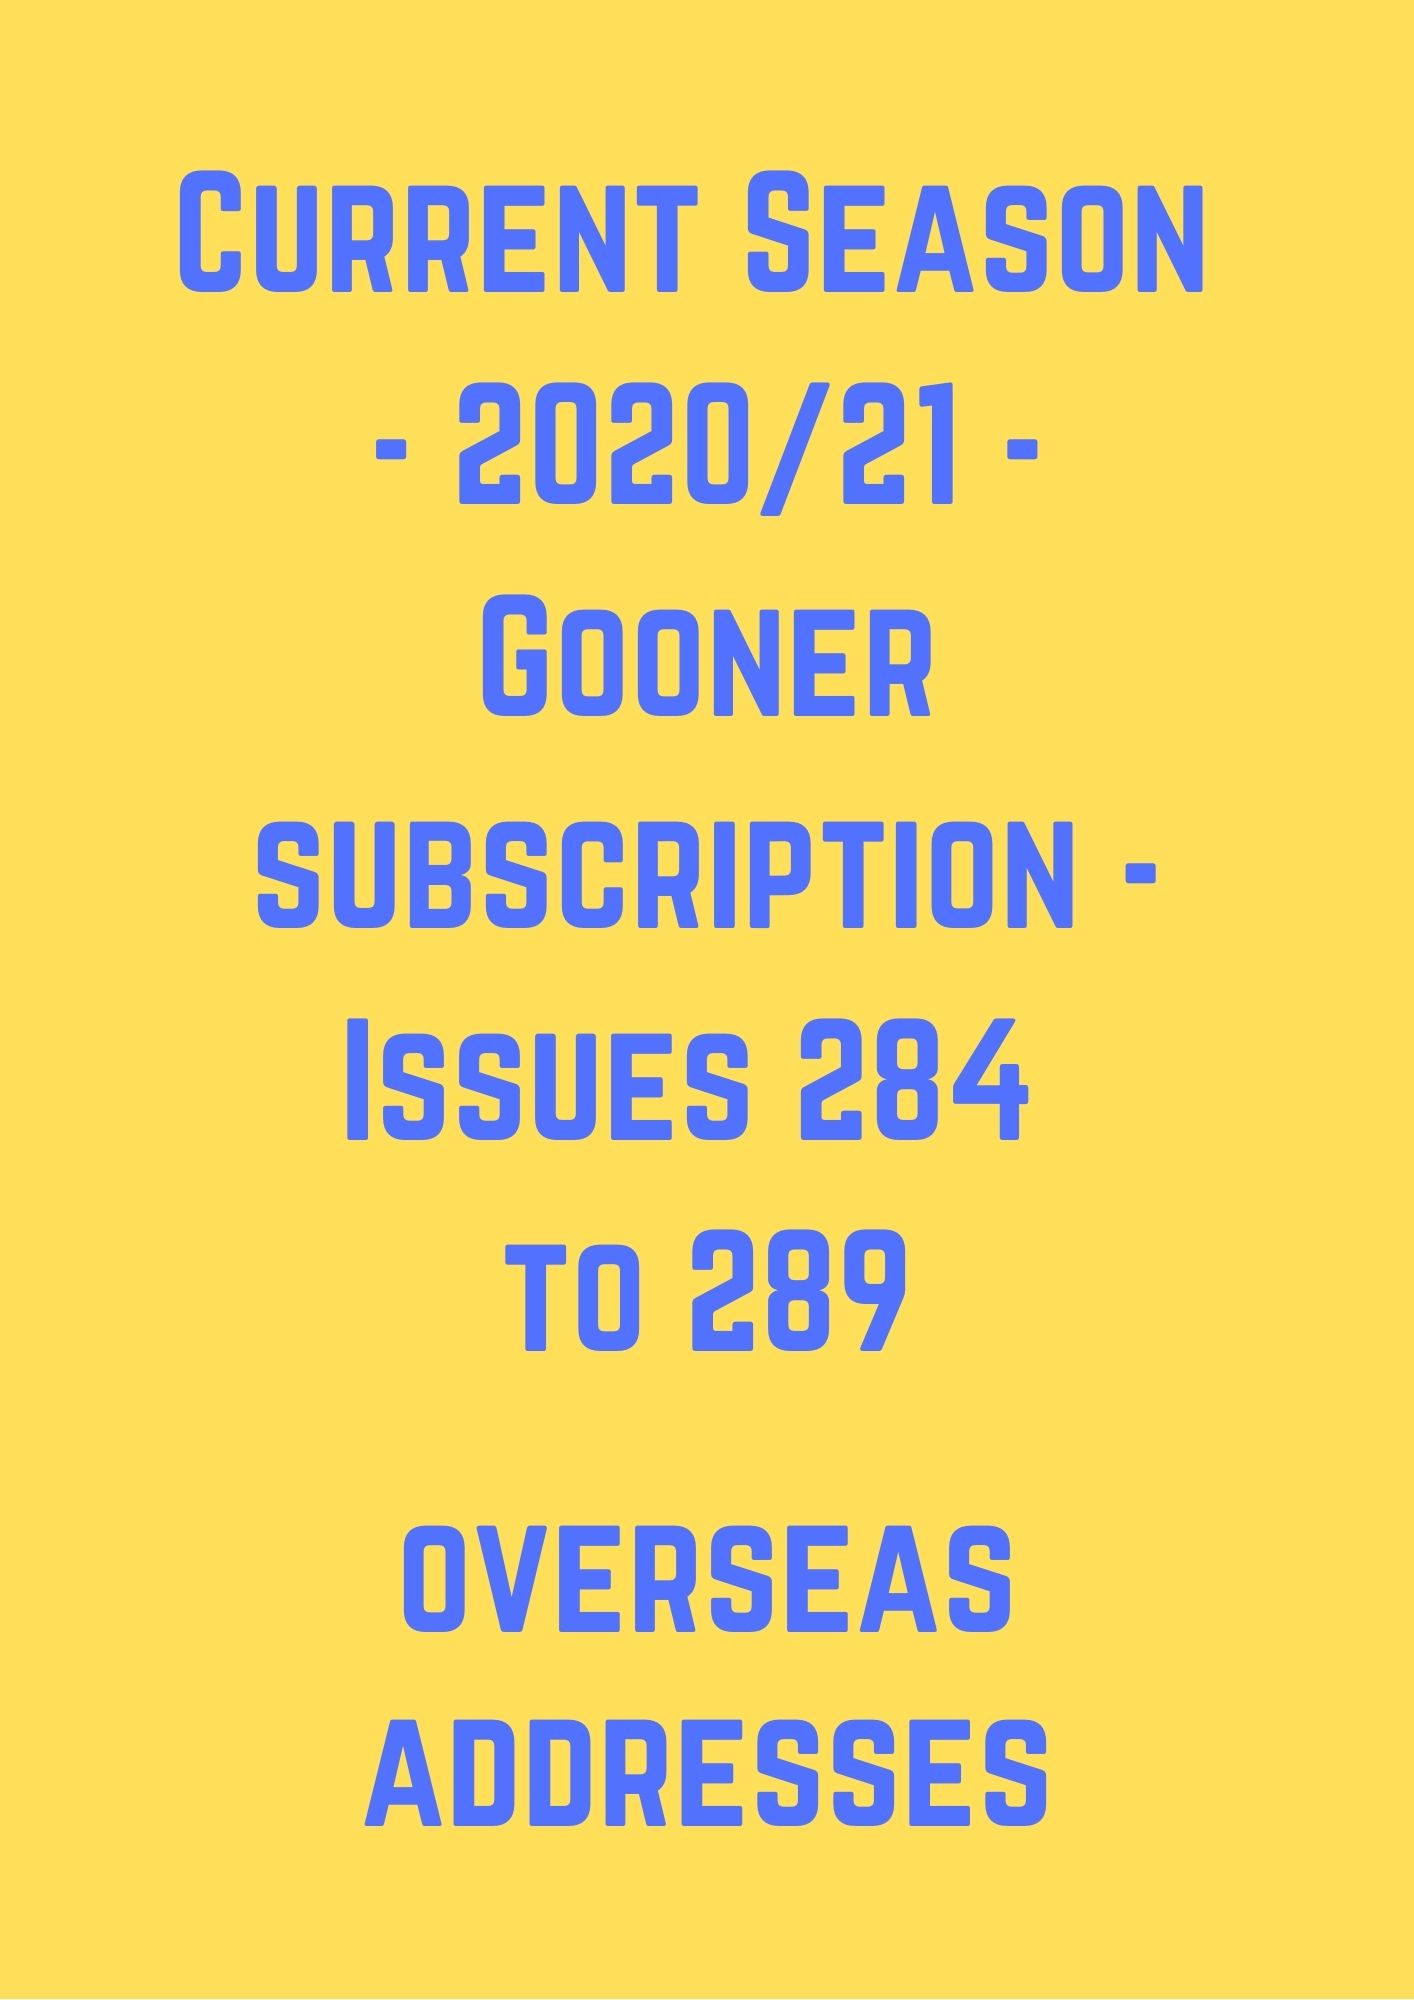 Current Season (2020/21) Overseas Subscription